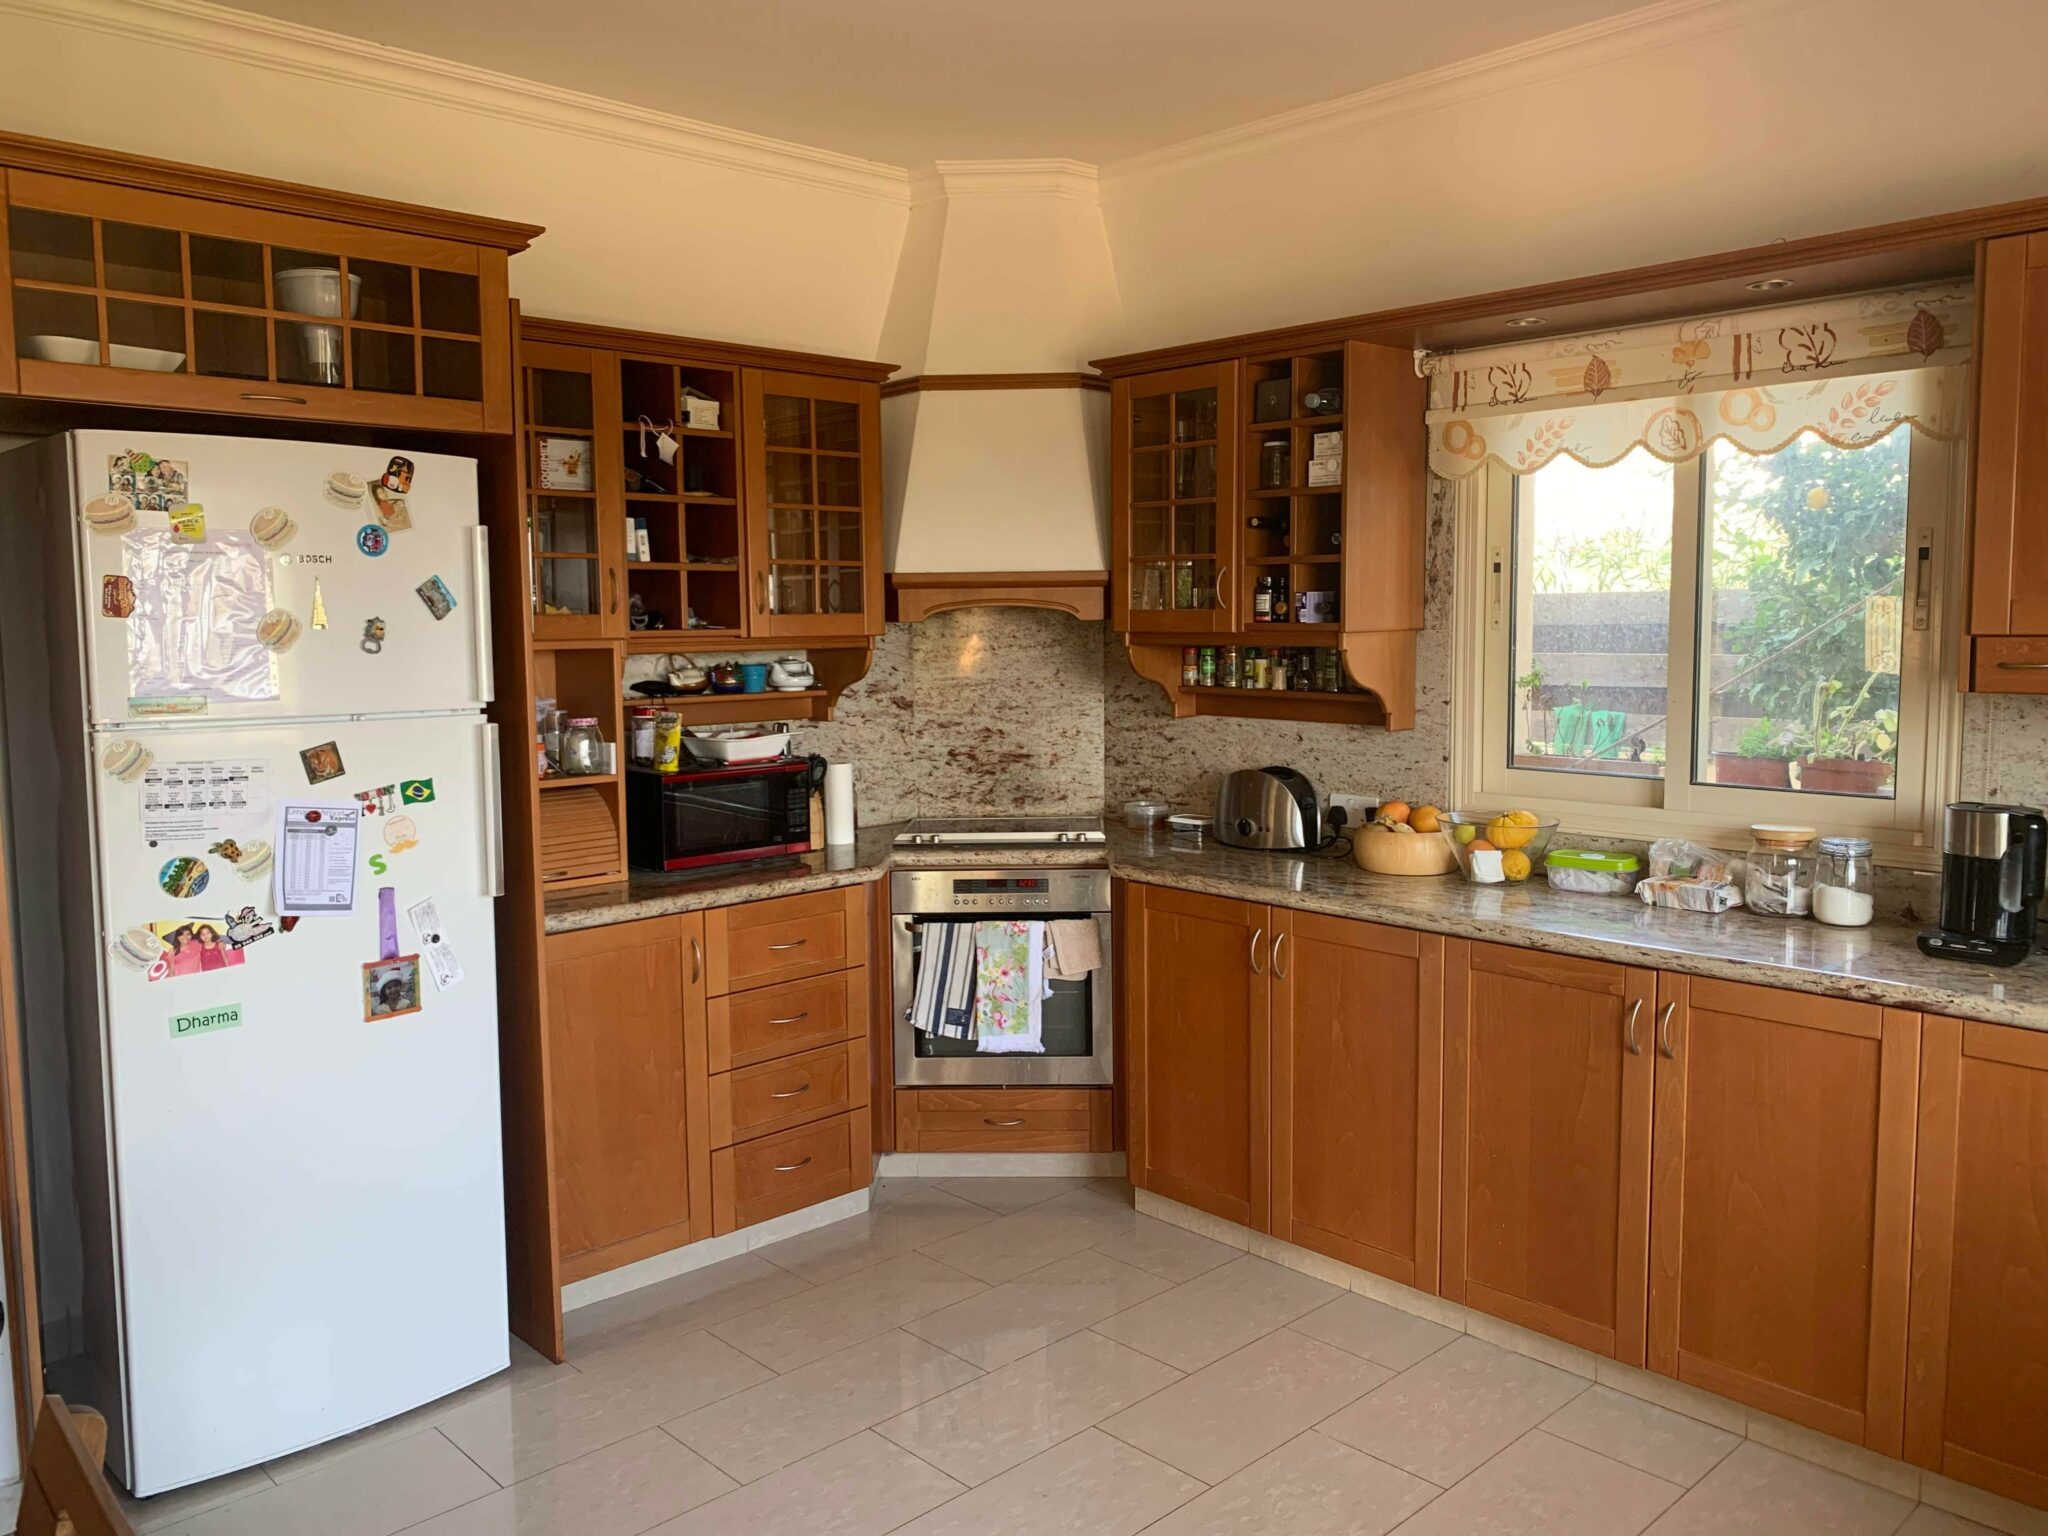 5-bedroom Detached Villa 280 sqm in Erimi